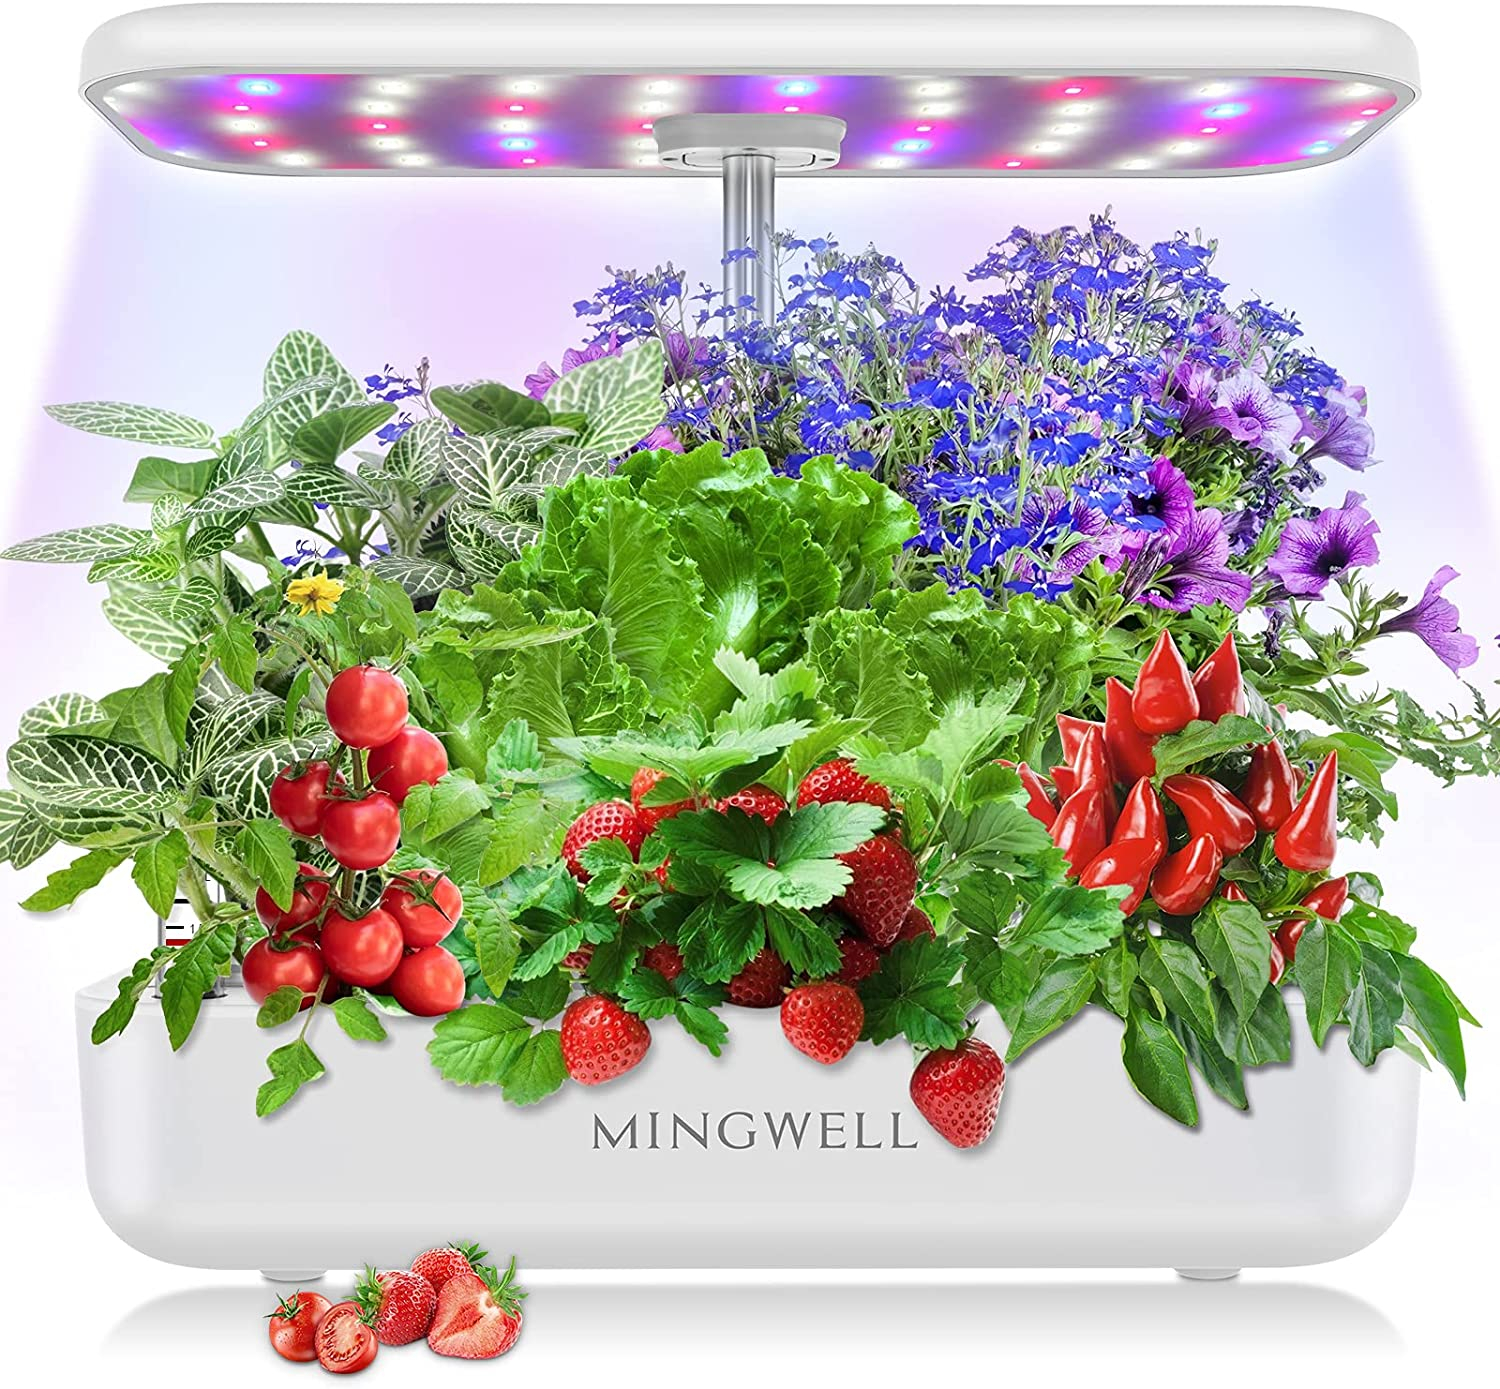 Hydroponics Growing System, 12 Pods Harvest Indoor Growing System Garden with LED Grow Light, Smart Garden Growing Kit for Home Kitchen, Automatic Timer Germination Tray, Adjustable Led Lights (White)